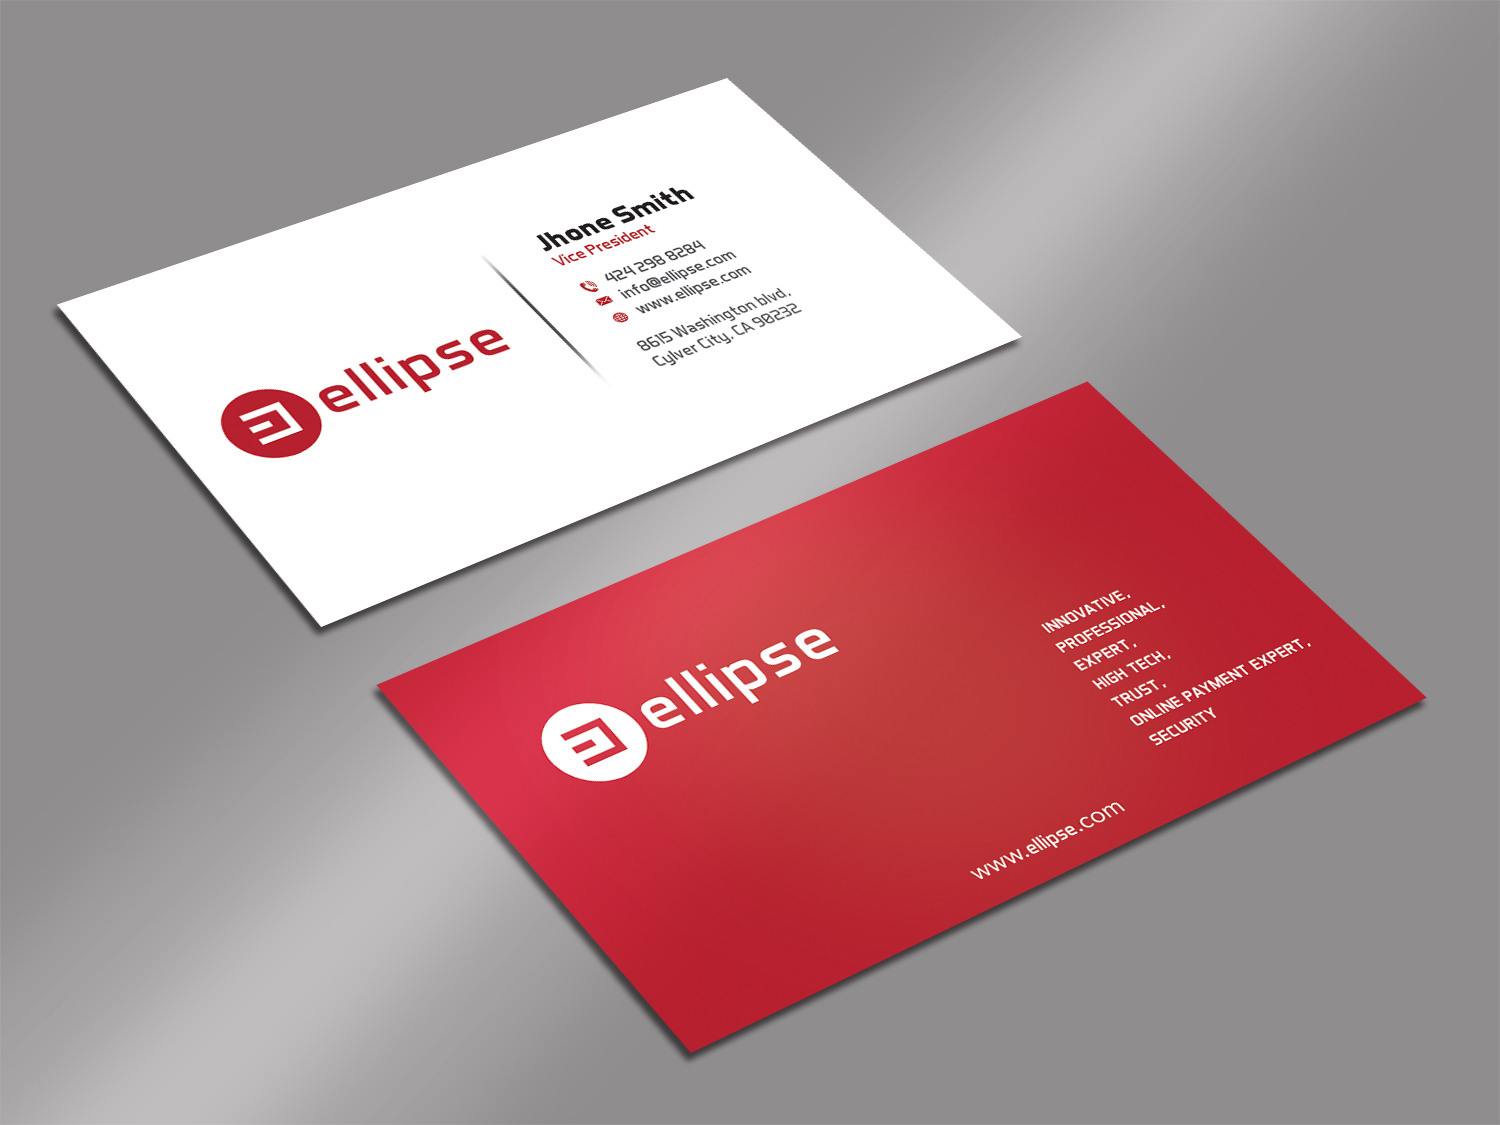 Upmarket serious startup business card design for ellipse by business card design by nuhanenterprise for ellipse design 14040512 reheart Image collections